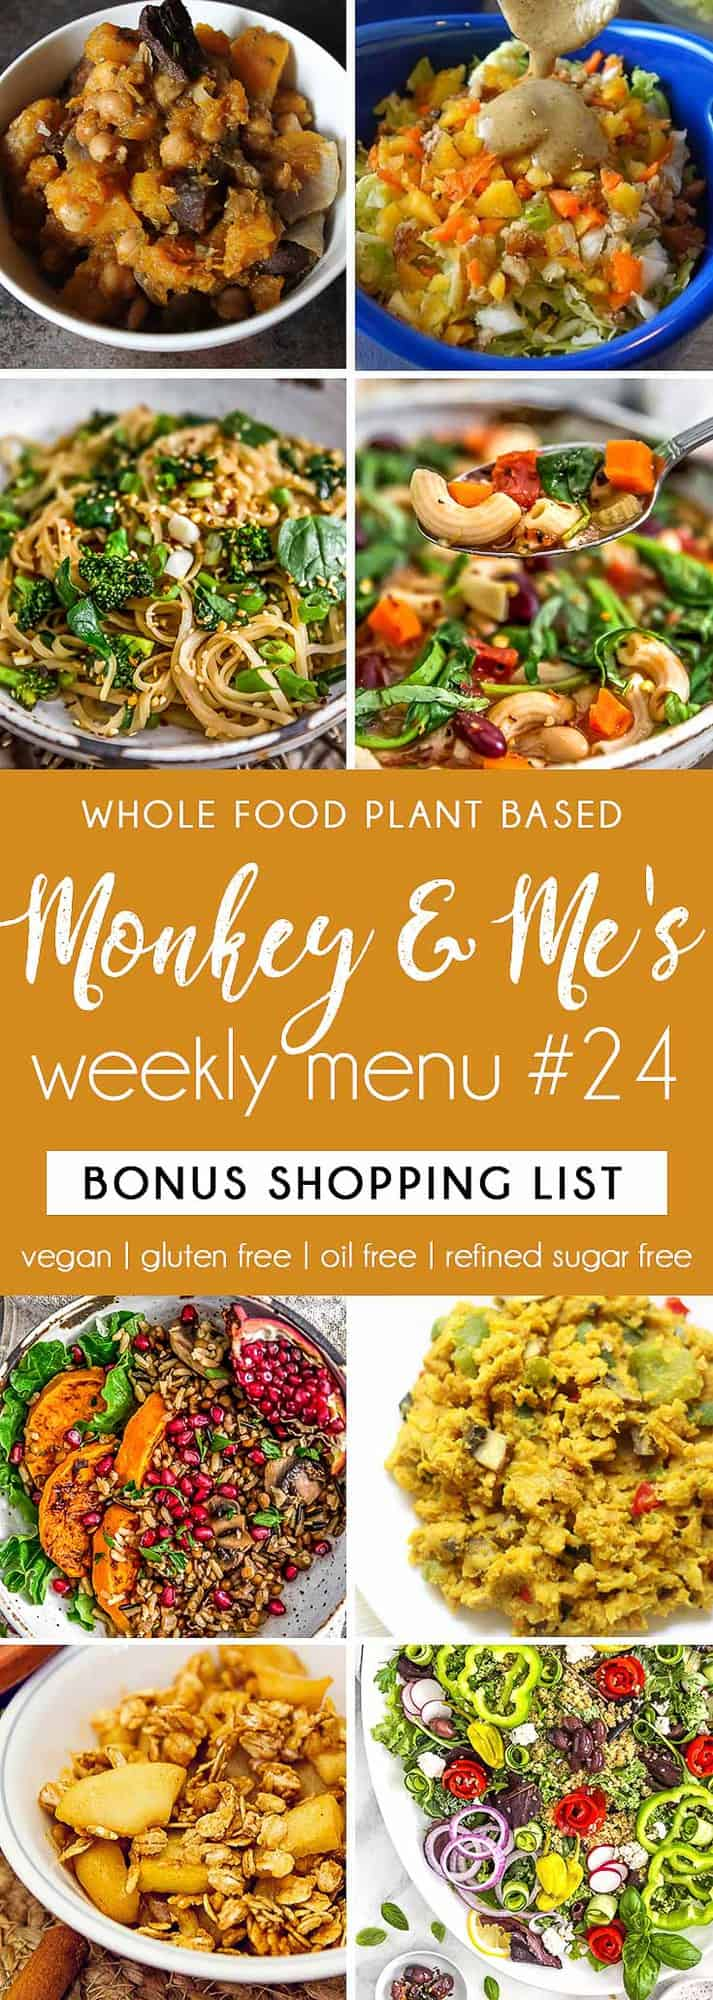 Monkey and Me's Menu 24 featuring 8 recipes